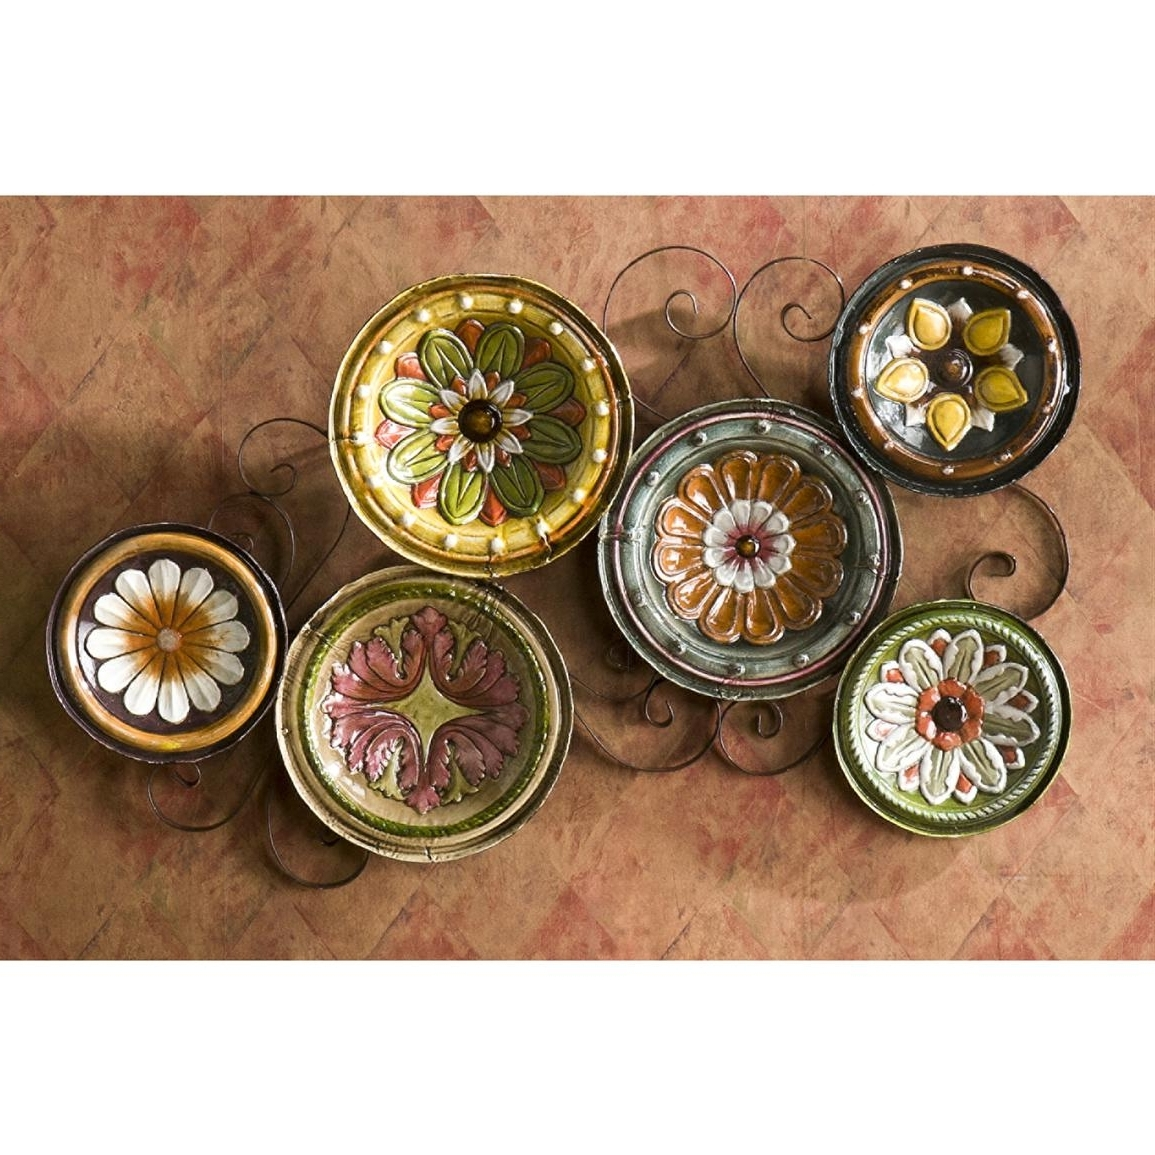 Well Liked Decorative Plates For Wall Art \u2022 Walls Decor Within Decorative Plates For Wall Art  sc 1 st  Arts Accents Decals Murals Collections and More. : plates decorative - pezcame.com